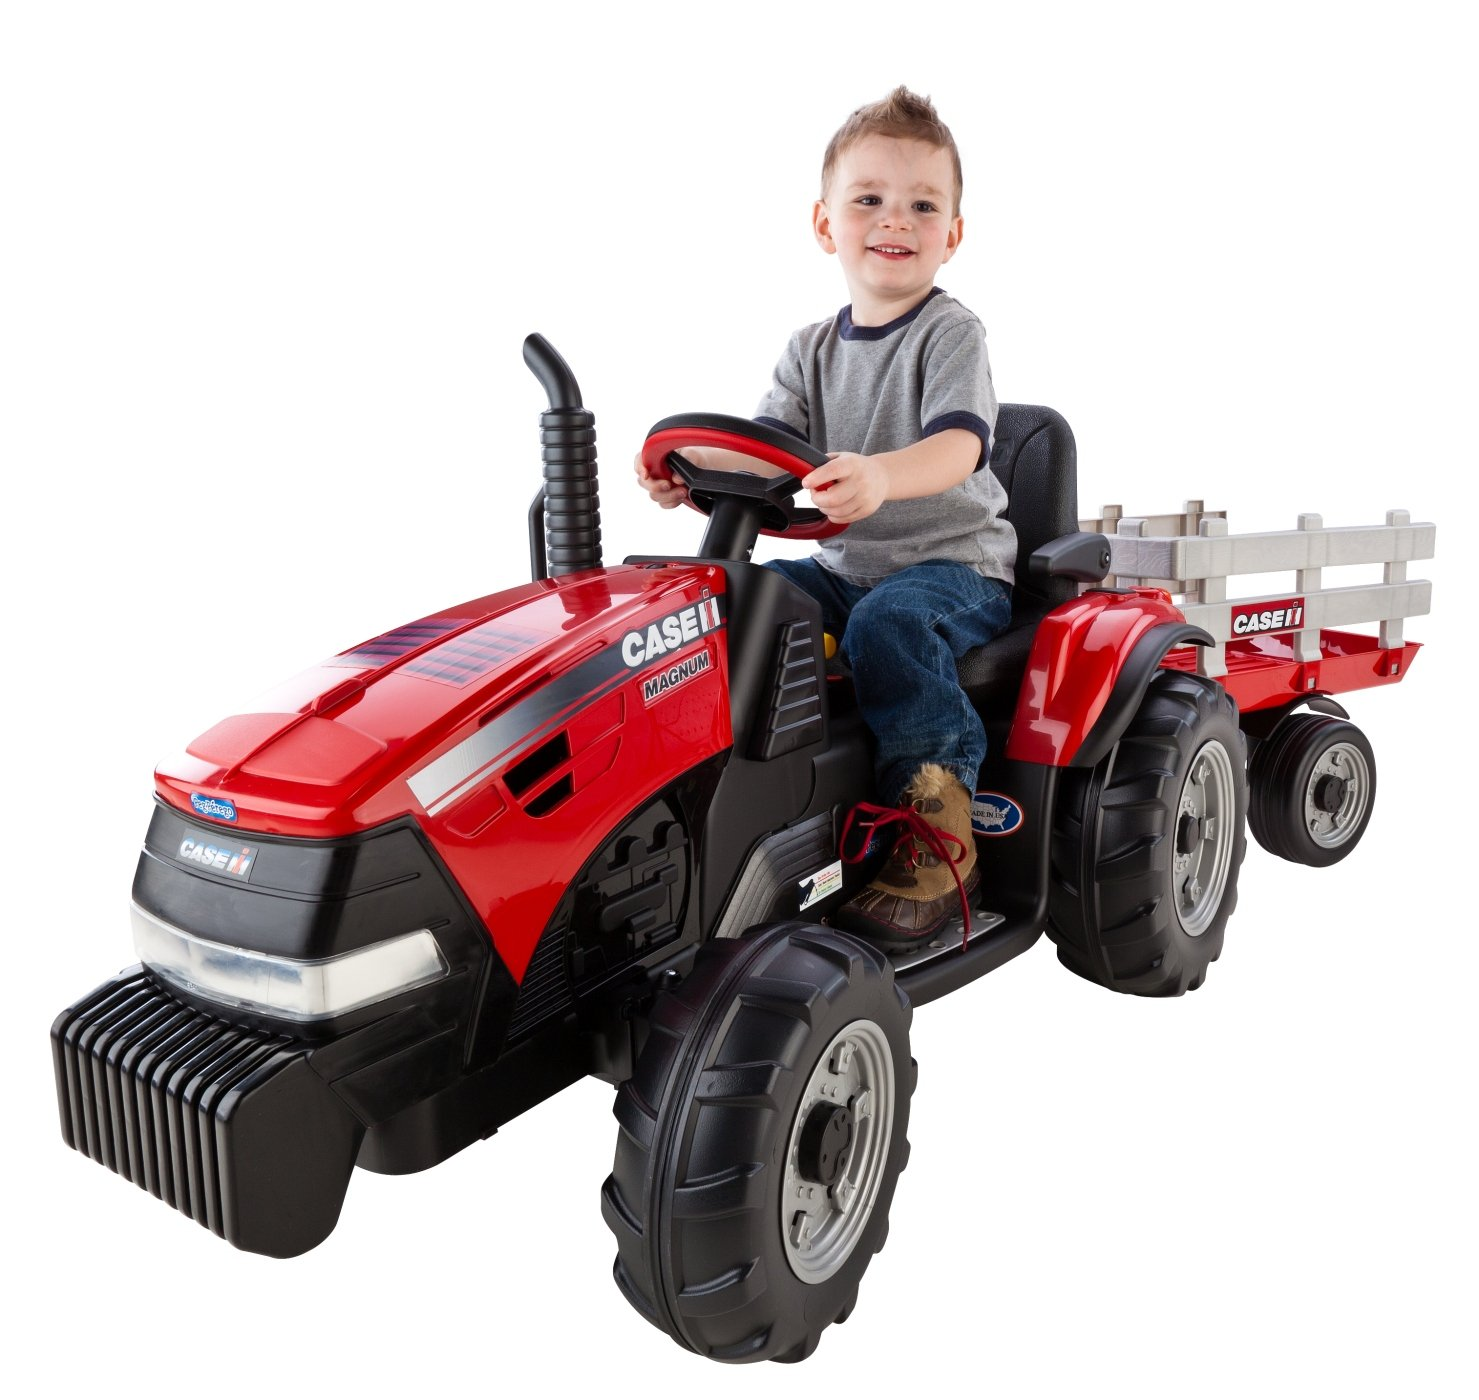 Peg Perego Case IH Magnum Tractor/Trailer